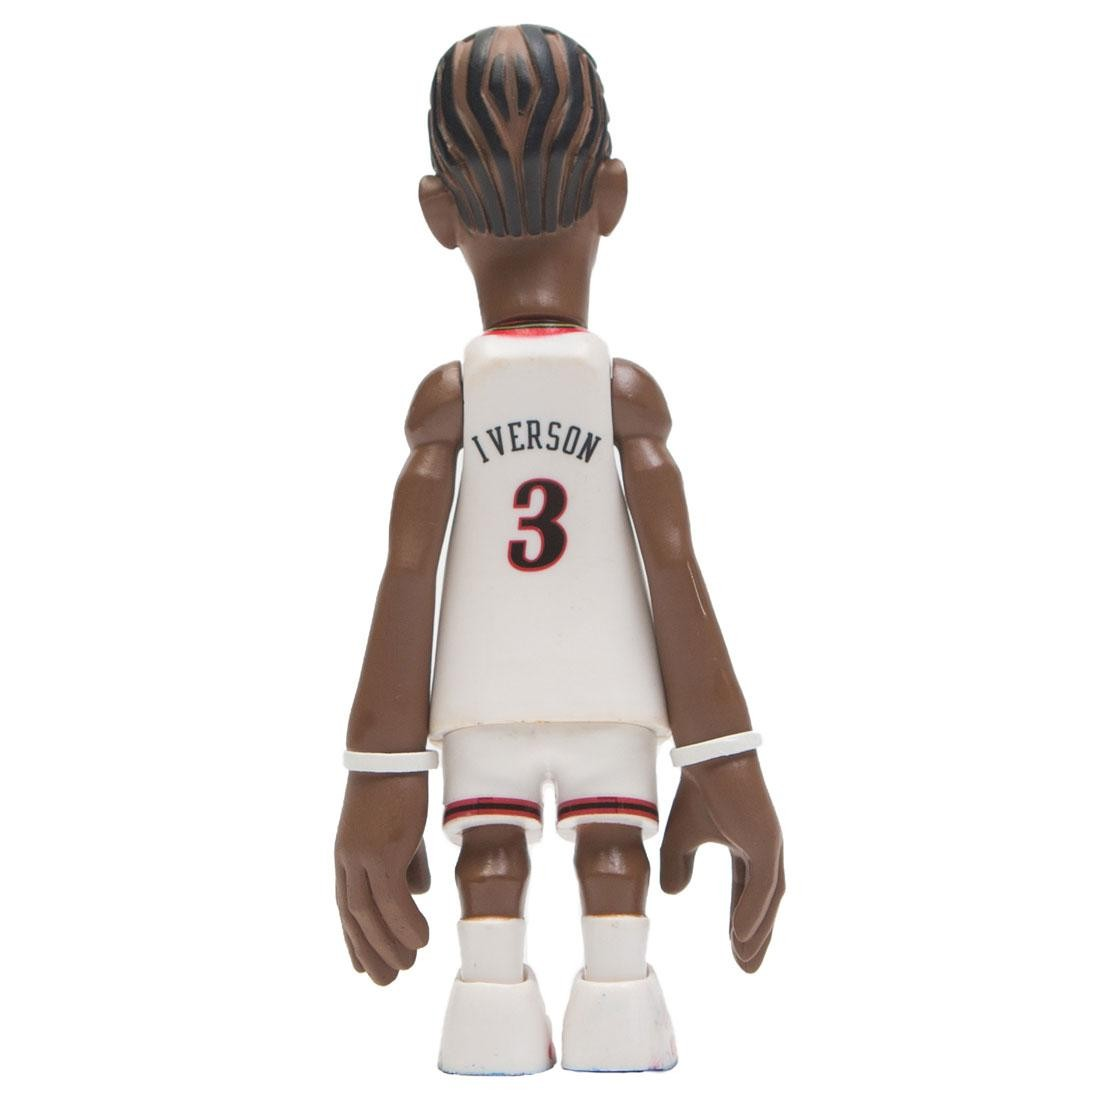 MINDstyle X Coolrain NBA Legends Philadelphia 76ers Allen Iverson Figure